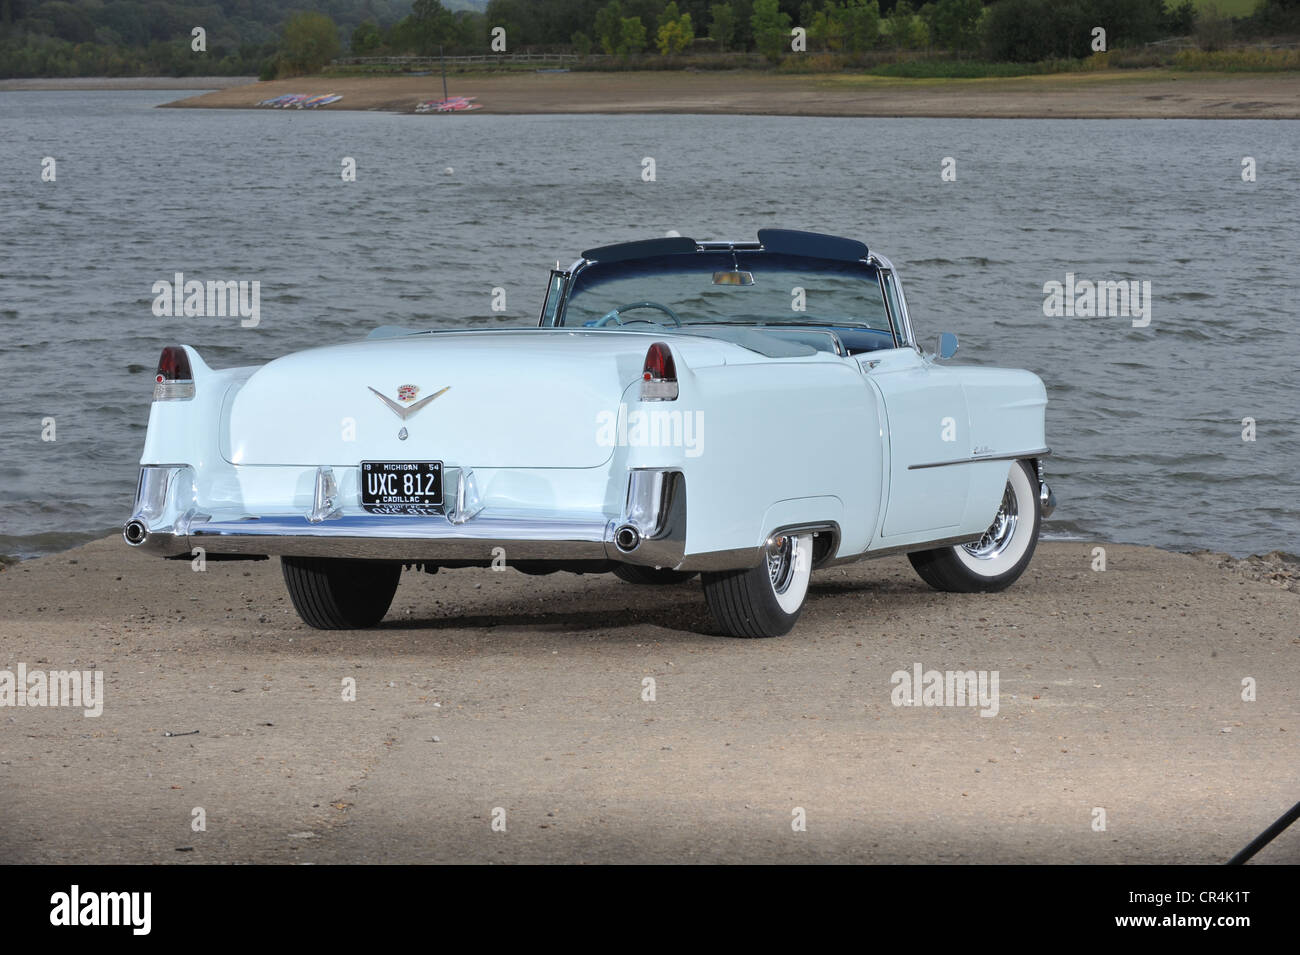 1954 Cadillac Stock Photos Images Alamy Coupe Deville Convertible Classic American Car Image